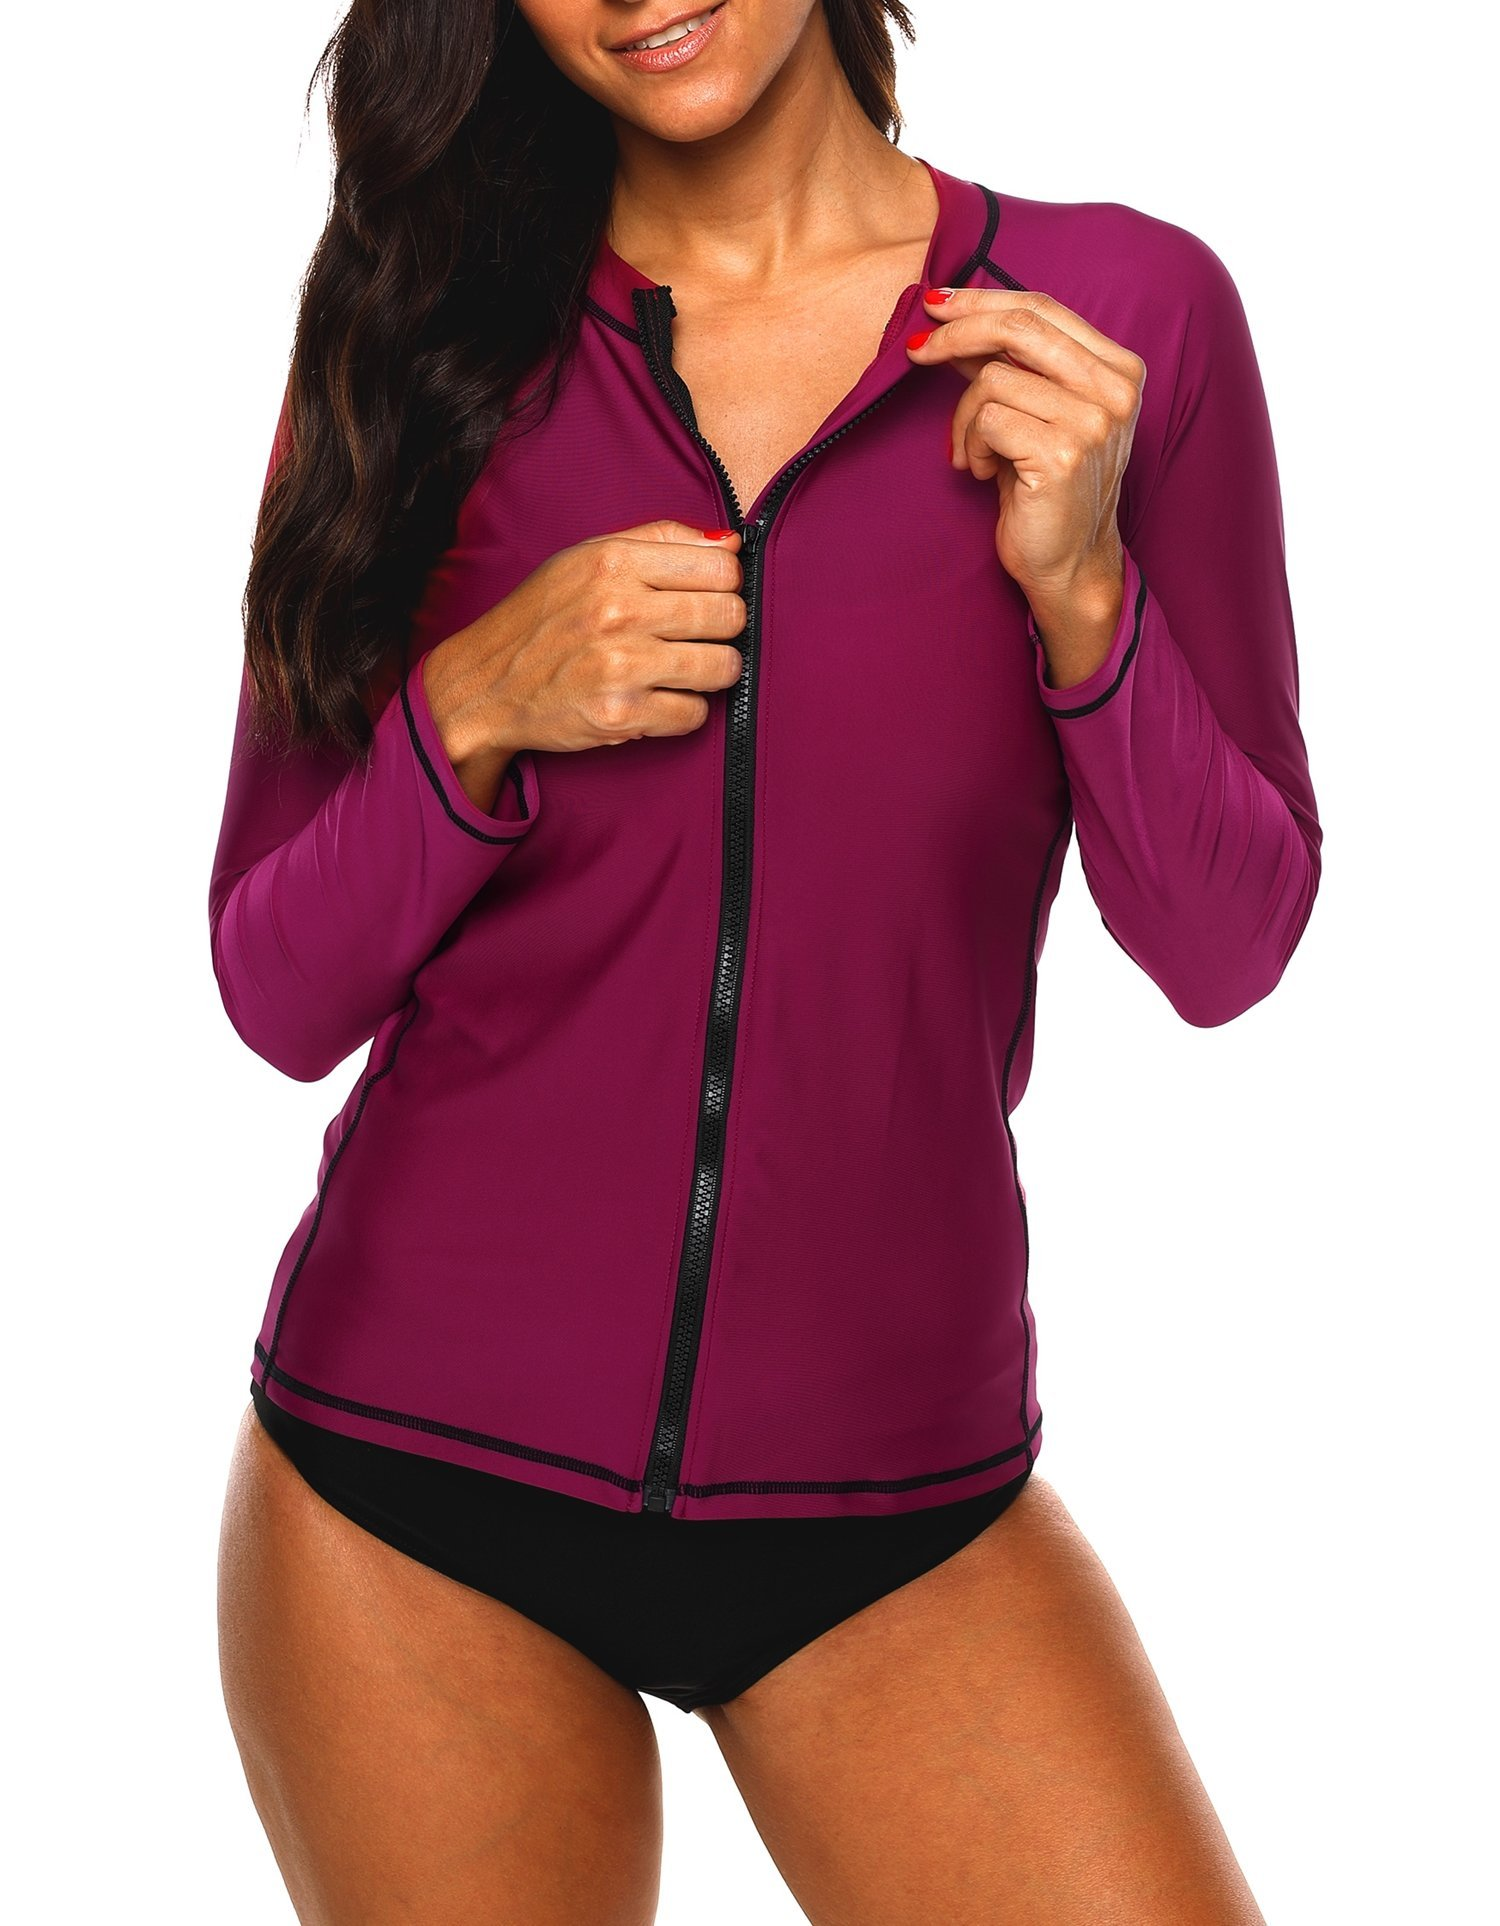 ATTRACO Womens Rashguard Shirt Long Sleeve Zip Front Workout Surf Shirt Purple Large by ATTRACO